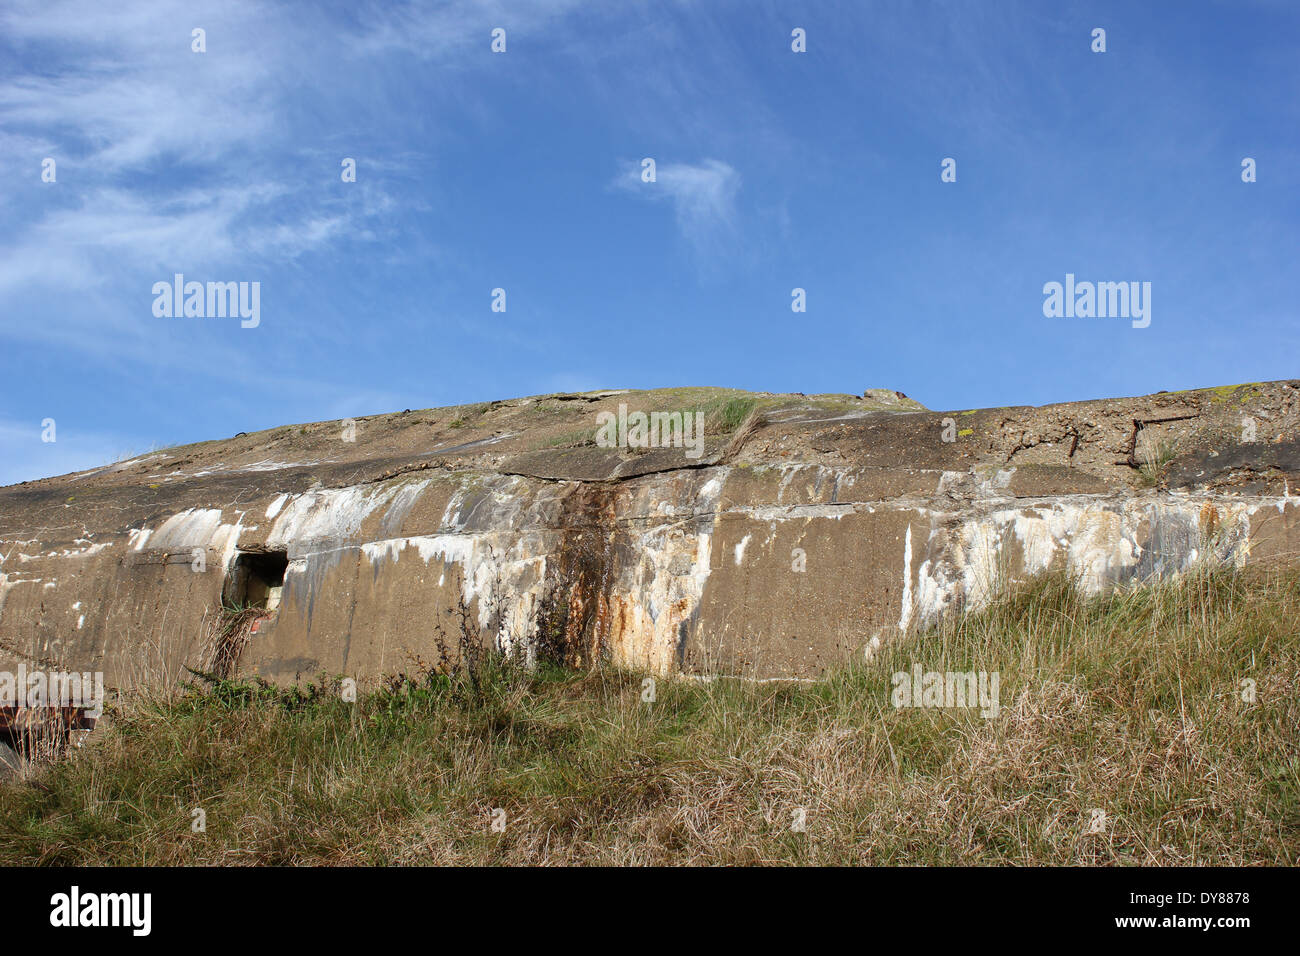 A bunker of the coastal fortifications on the island Fano in Denmark, Europe - Build 1940 to prevent the allied invasion - Stock Image